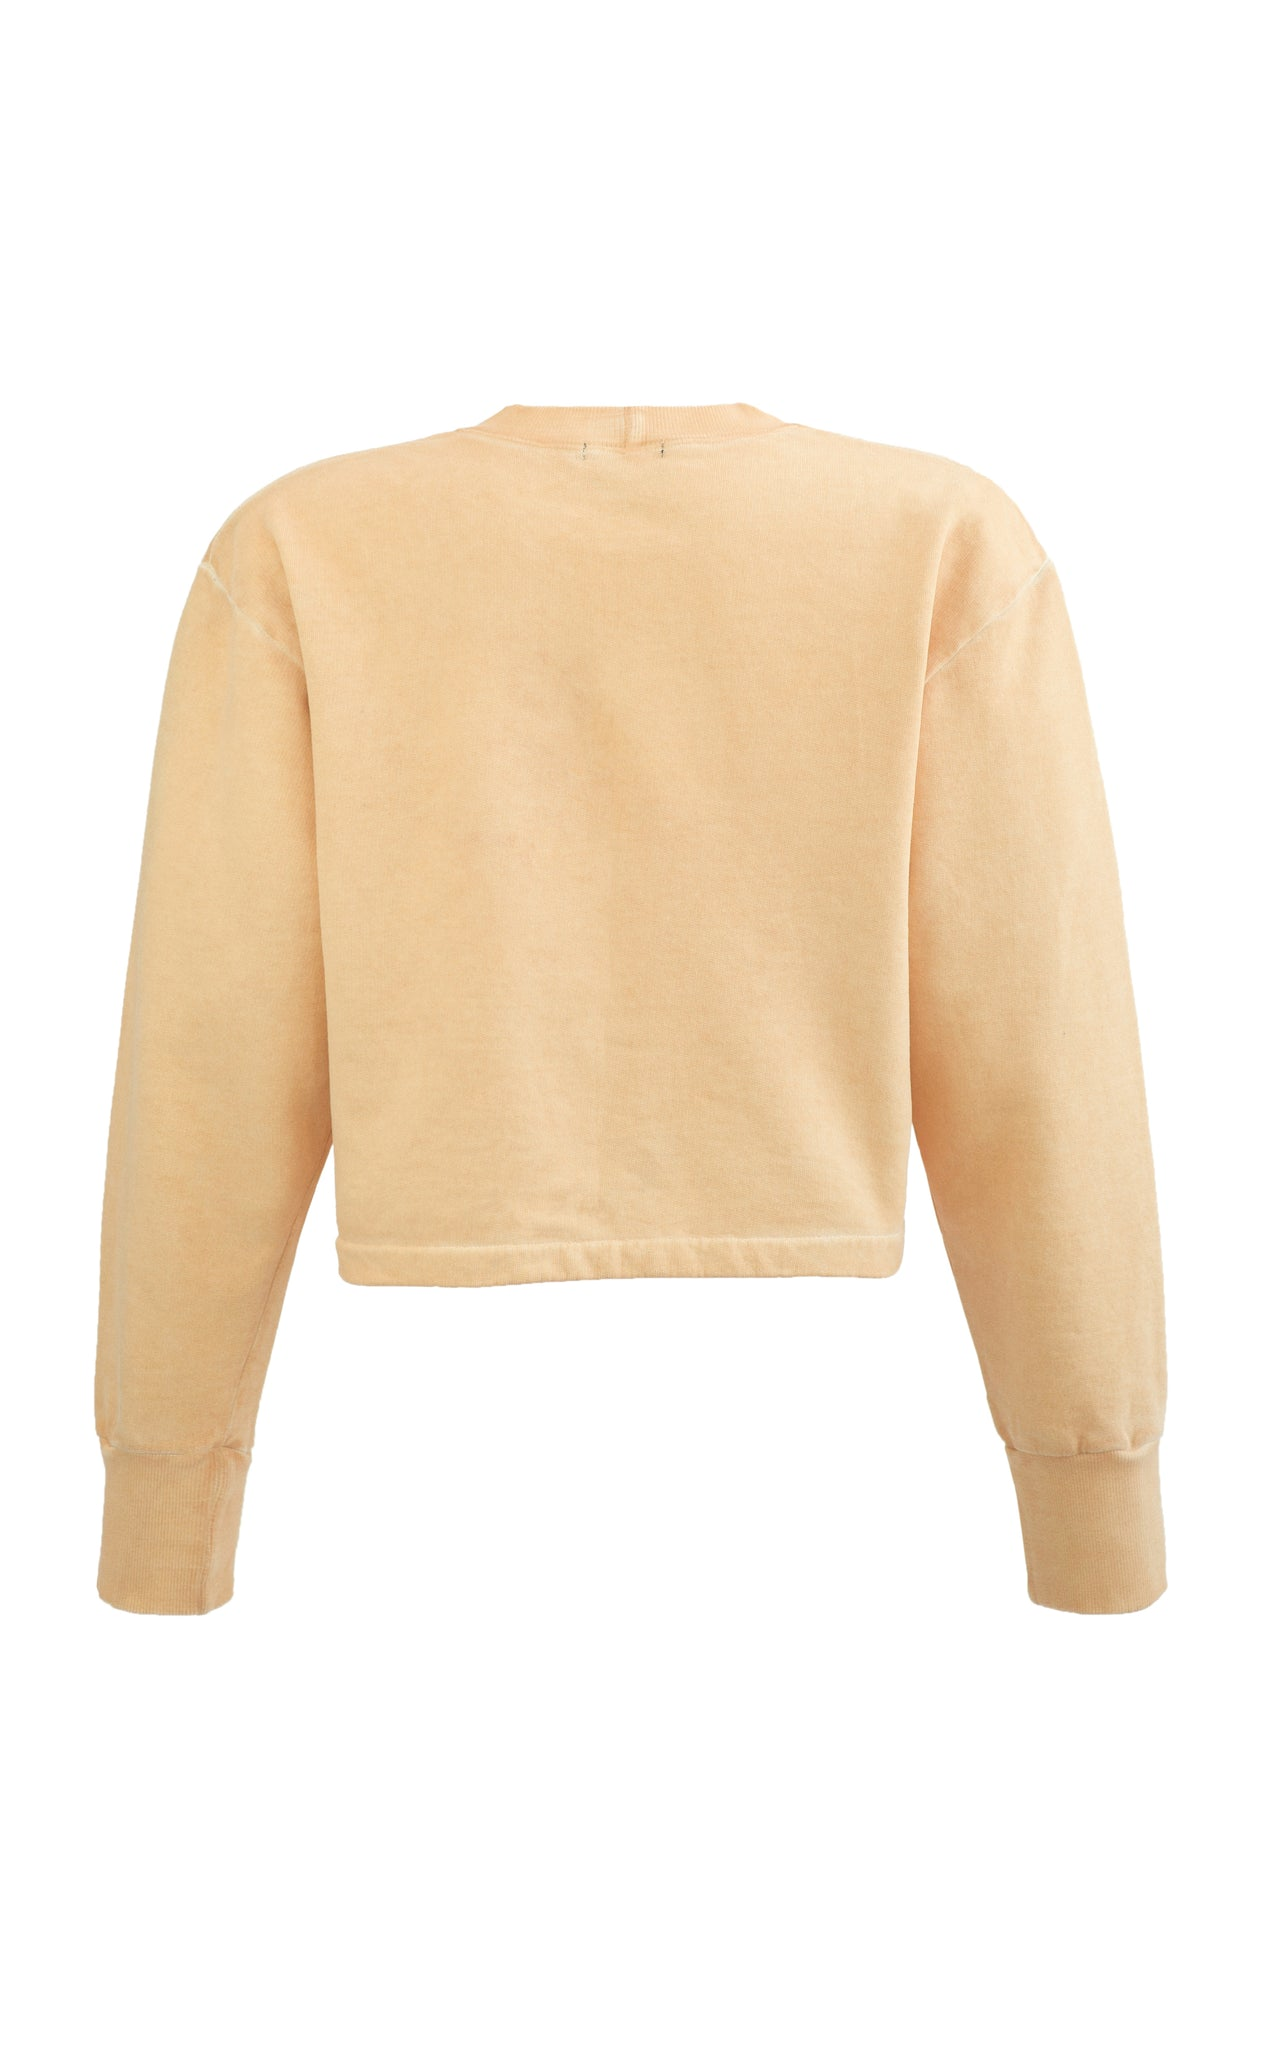 Cali Crop Sweat Top. Apricot